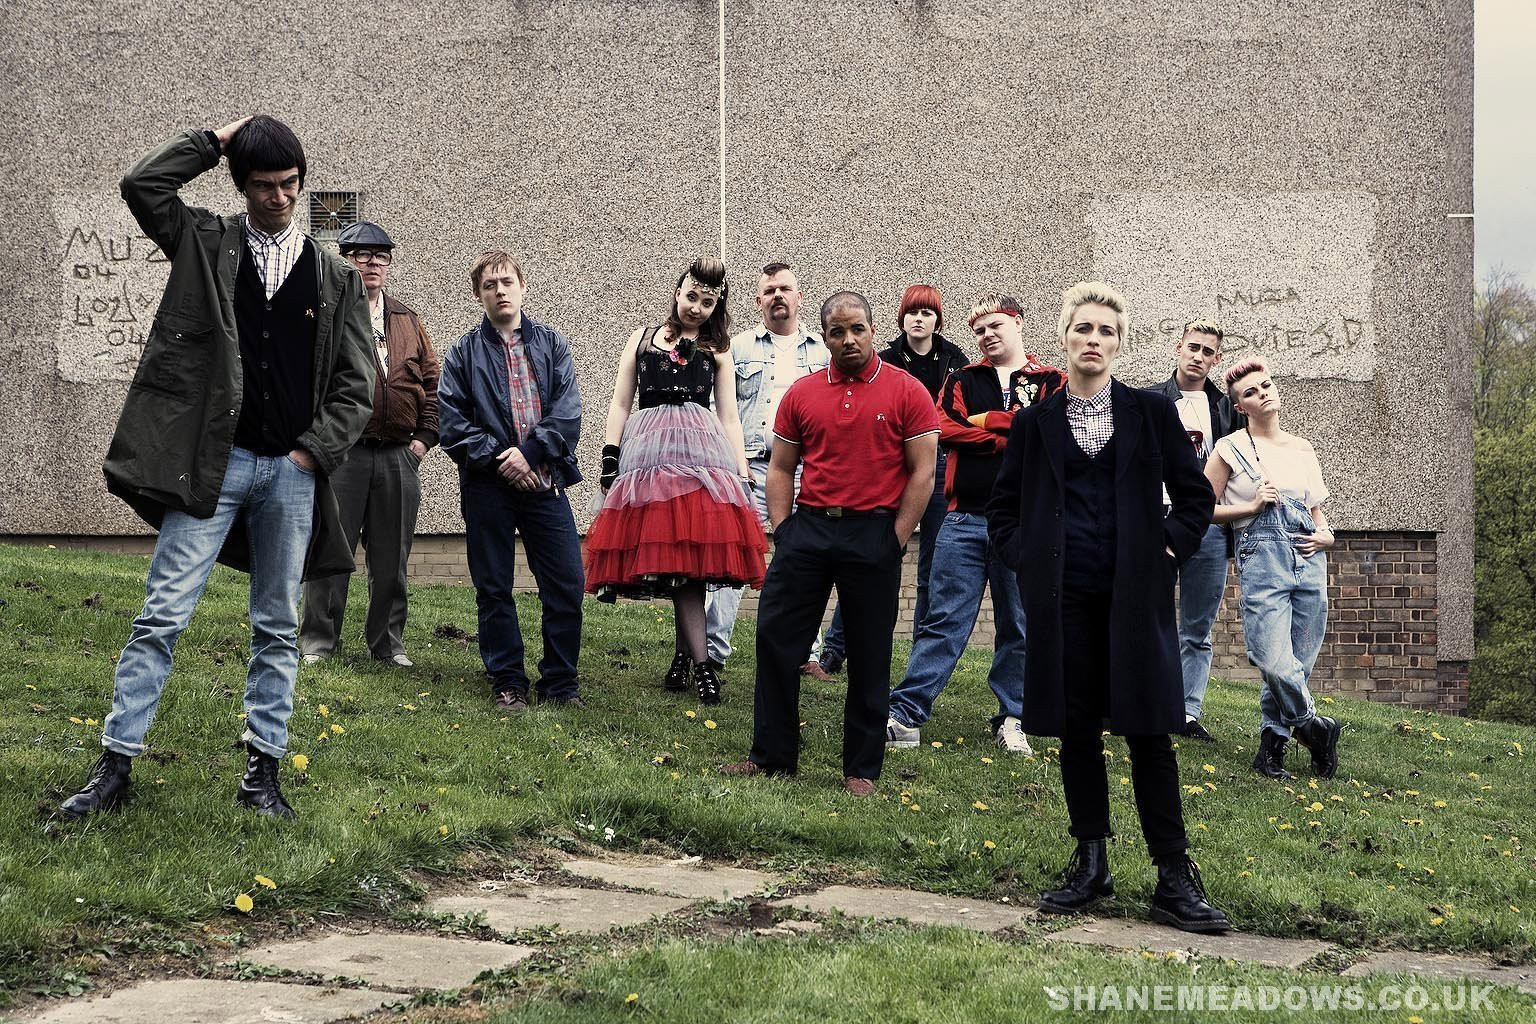 This is England 86 - Gruppenfoto